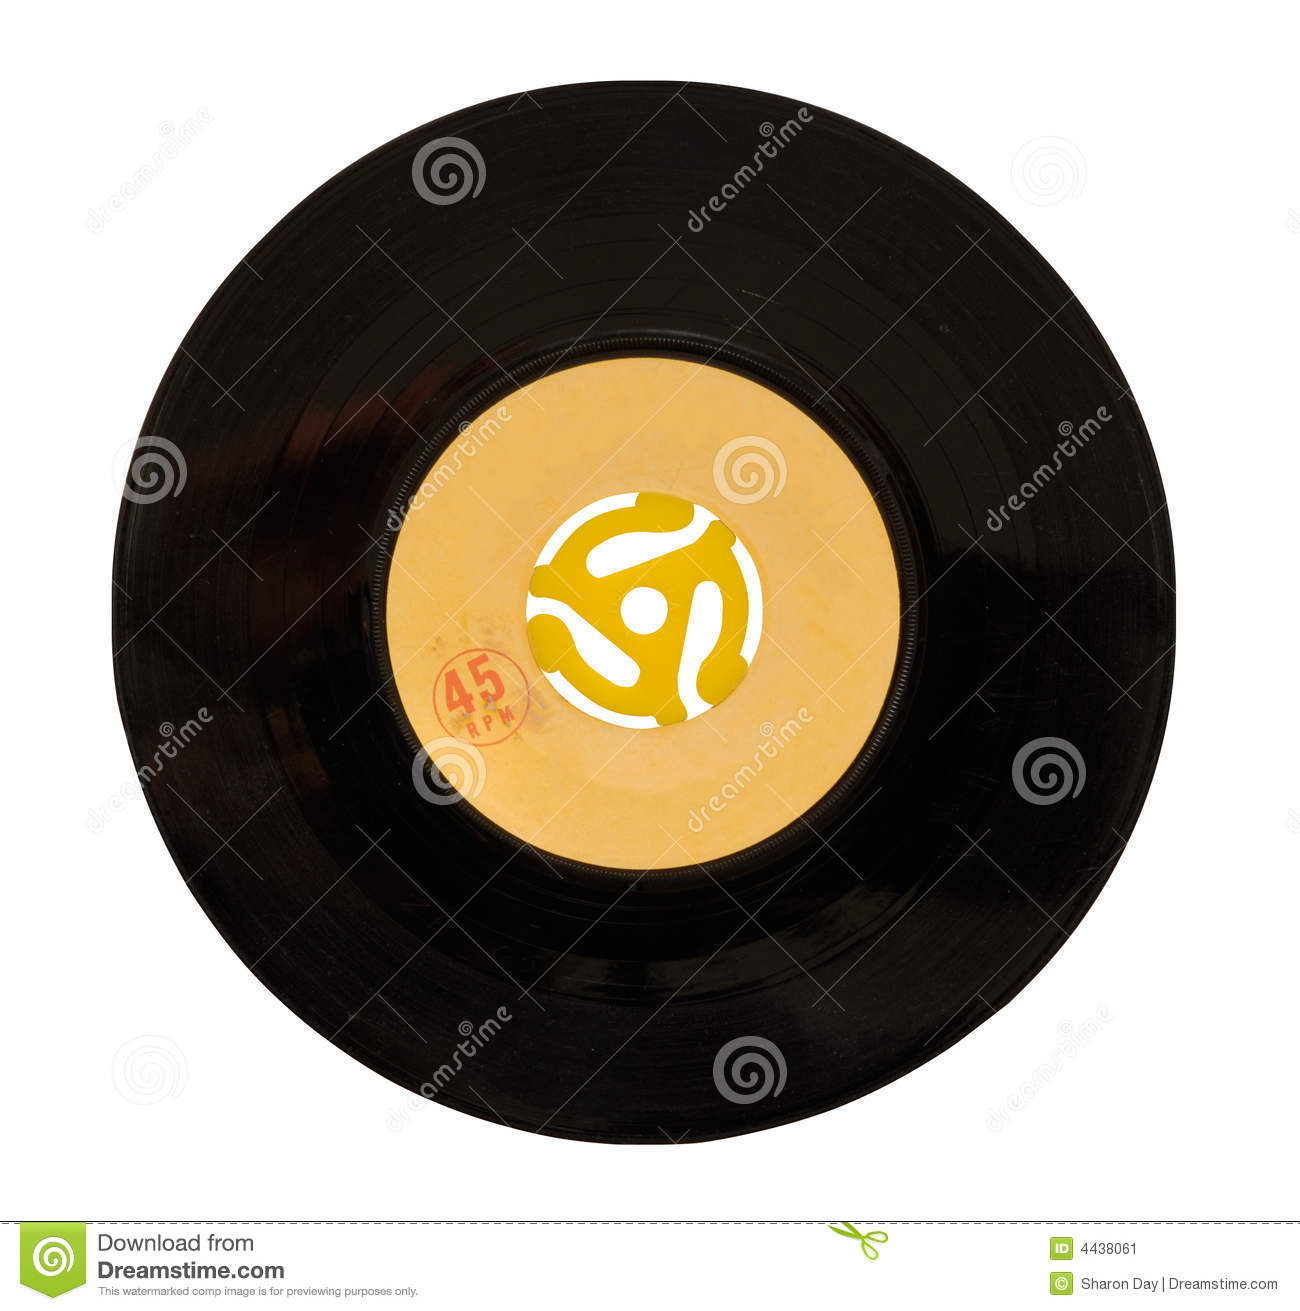 45 Rpm Record Stock Image Image 4438061